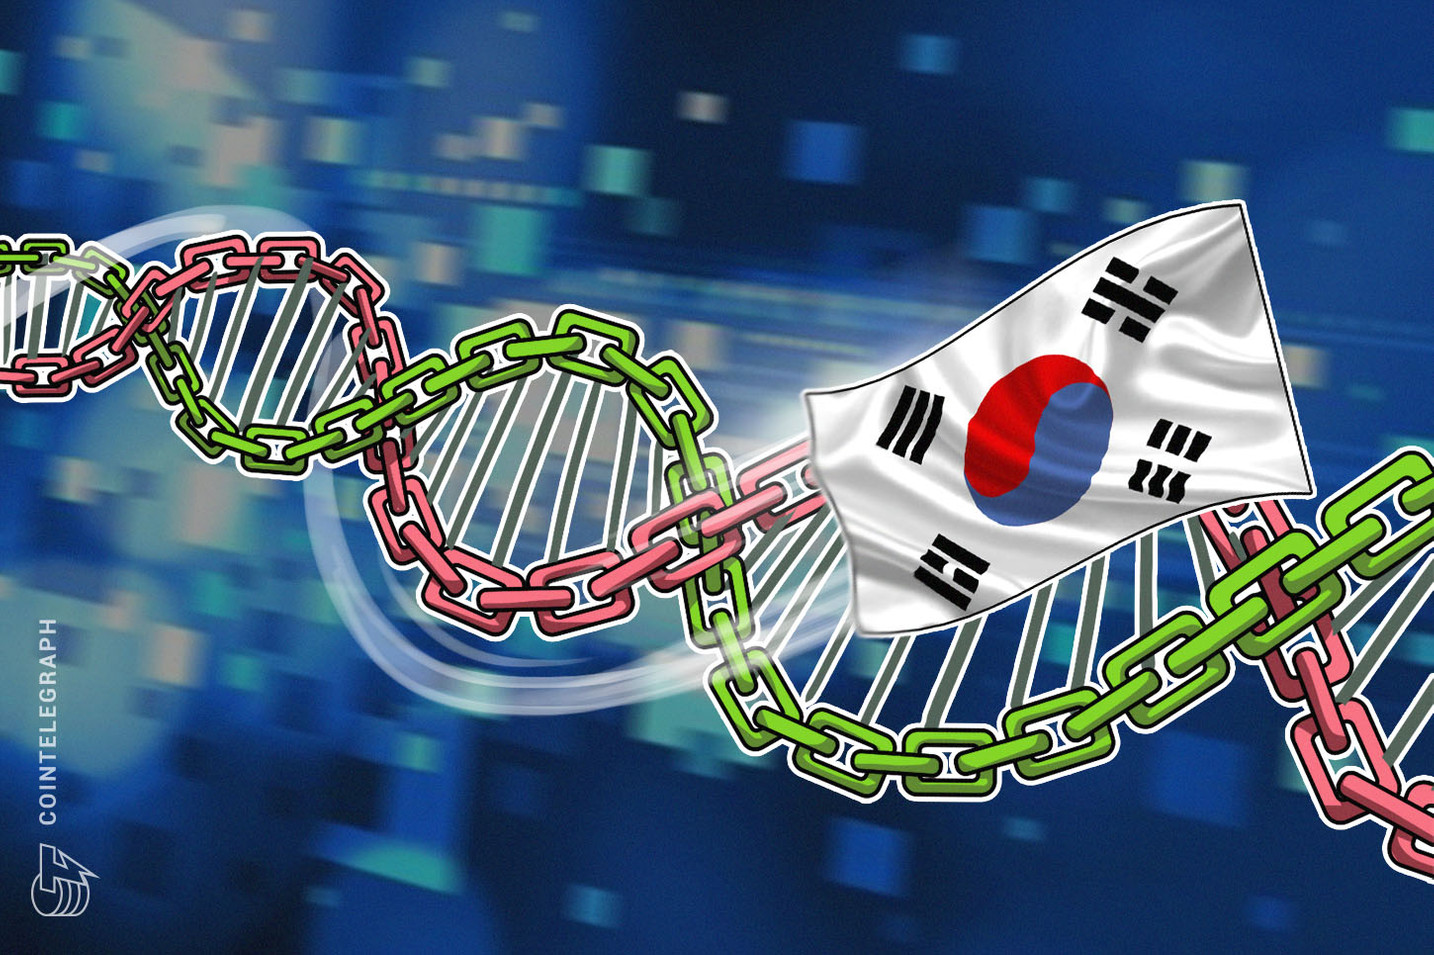 South Korean Biotech Firm to Use Blockchain for Genomic Big Data Ecosystem